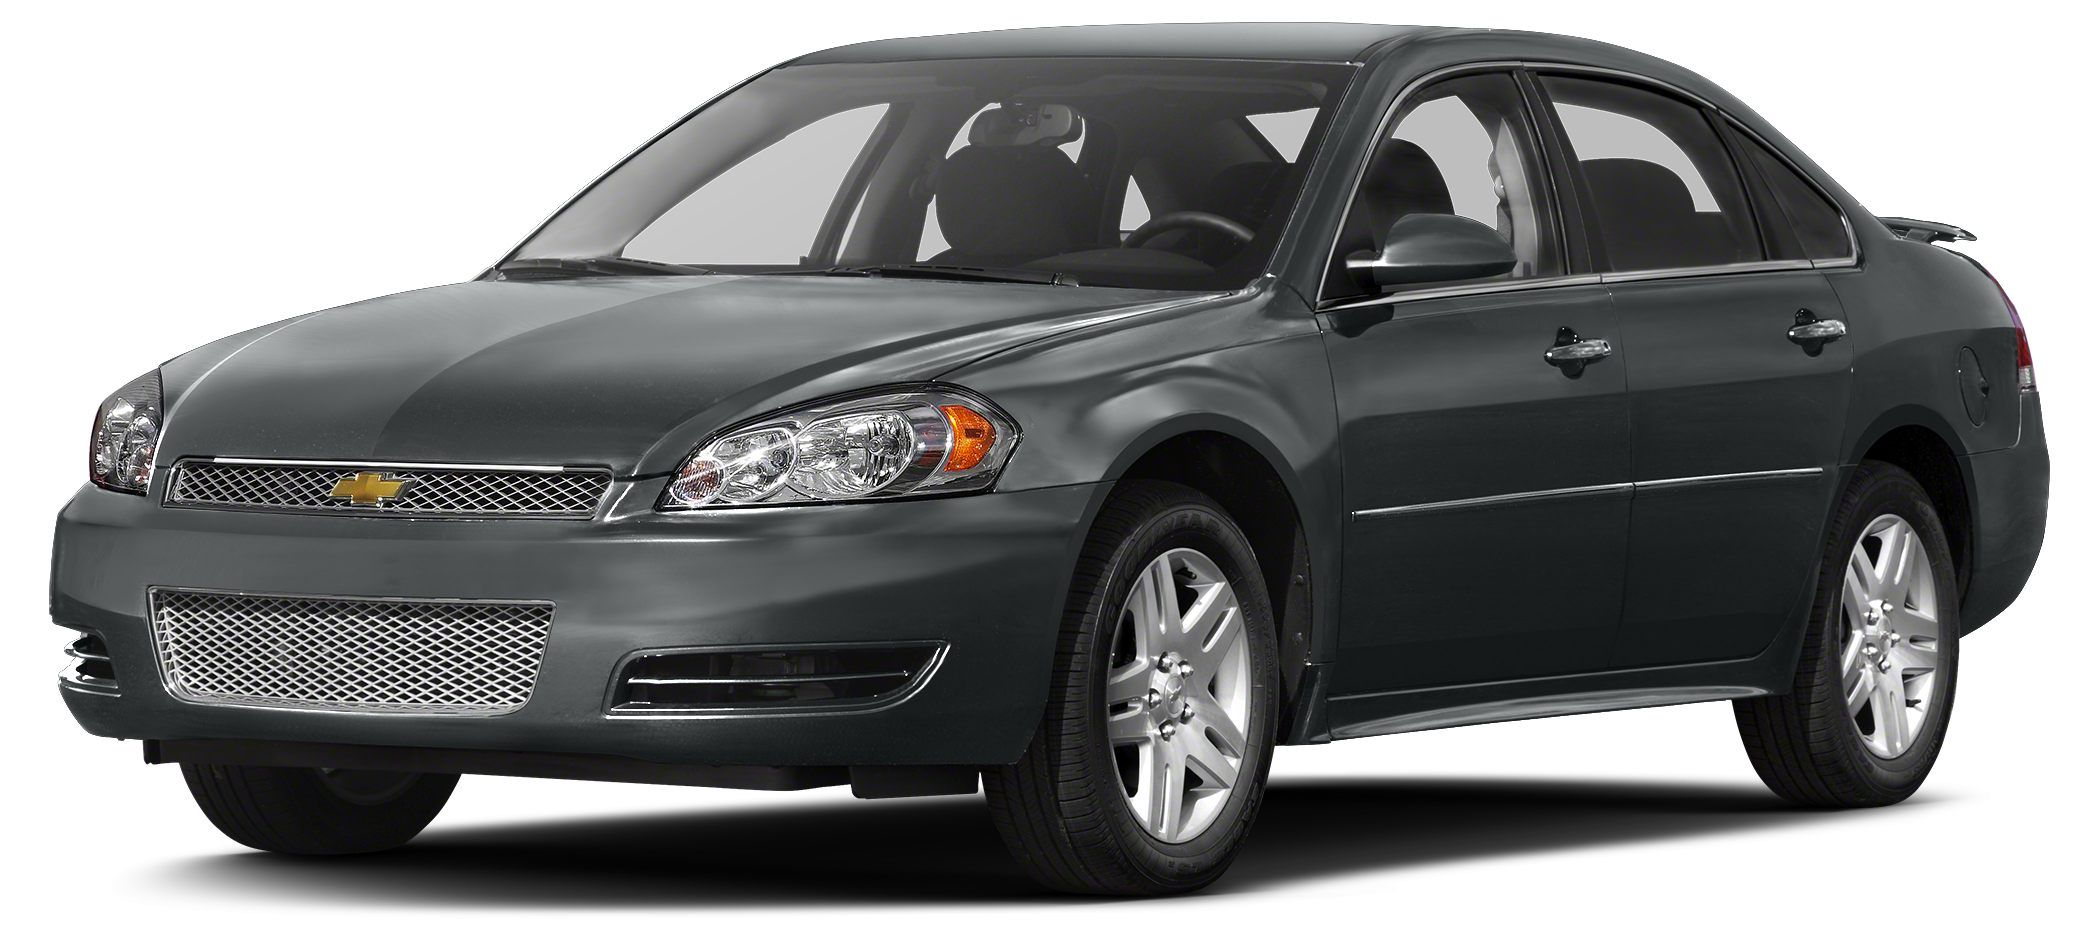 2014 Chevrolet Impala Limited LT Miles 62179Color Gray Stock SB15046A VIN 2G1WB5E39E1152934